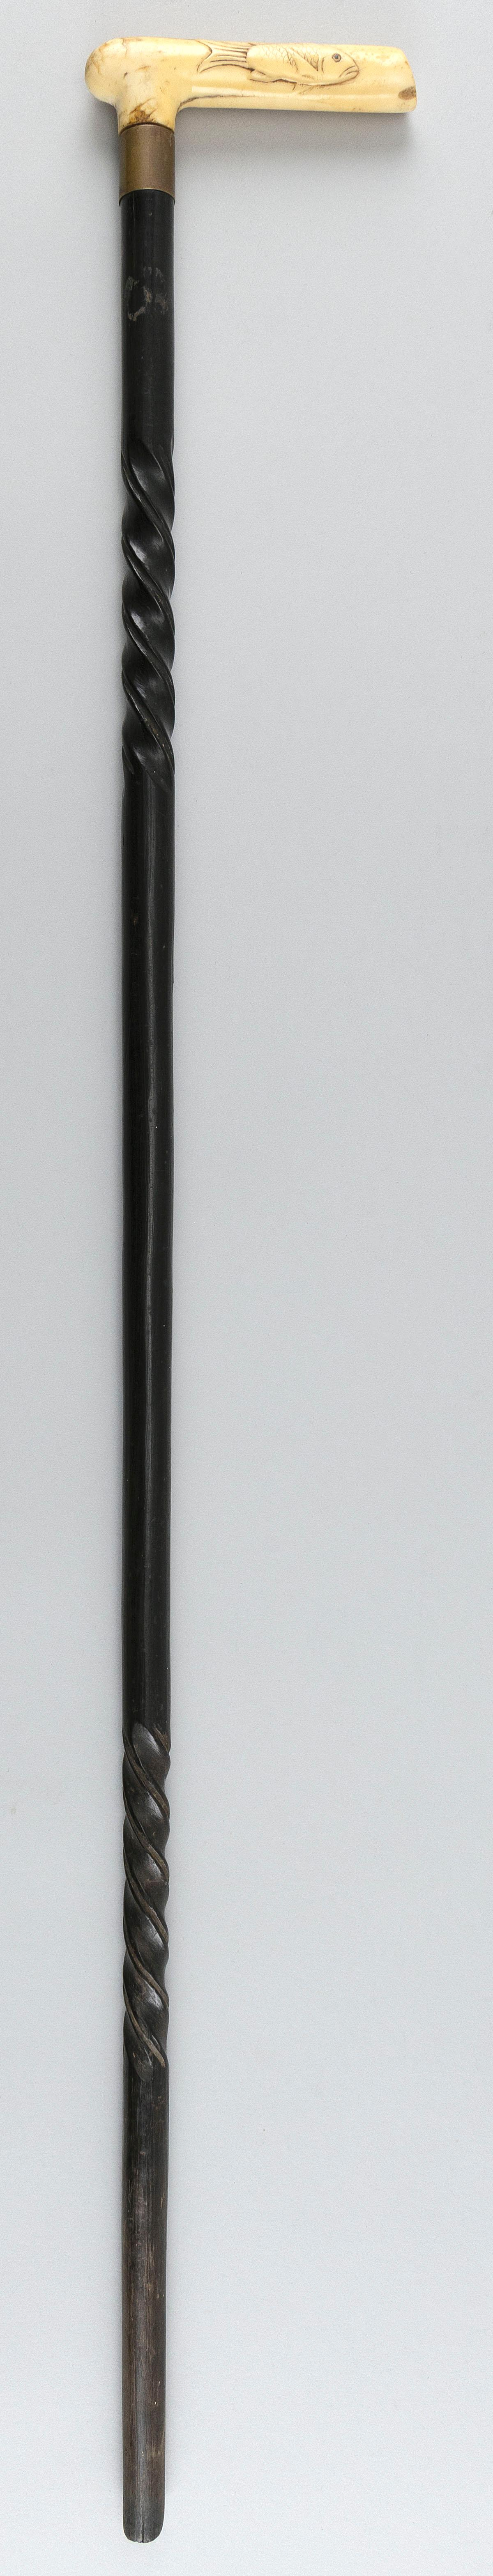 """WOODEN CANE WITH BONE HANDLE CARVED IN THE FORM OF A FISH Twist-carved shaft. Length 33""""."""